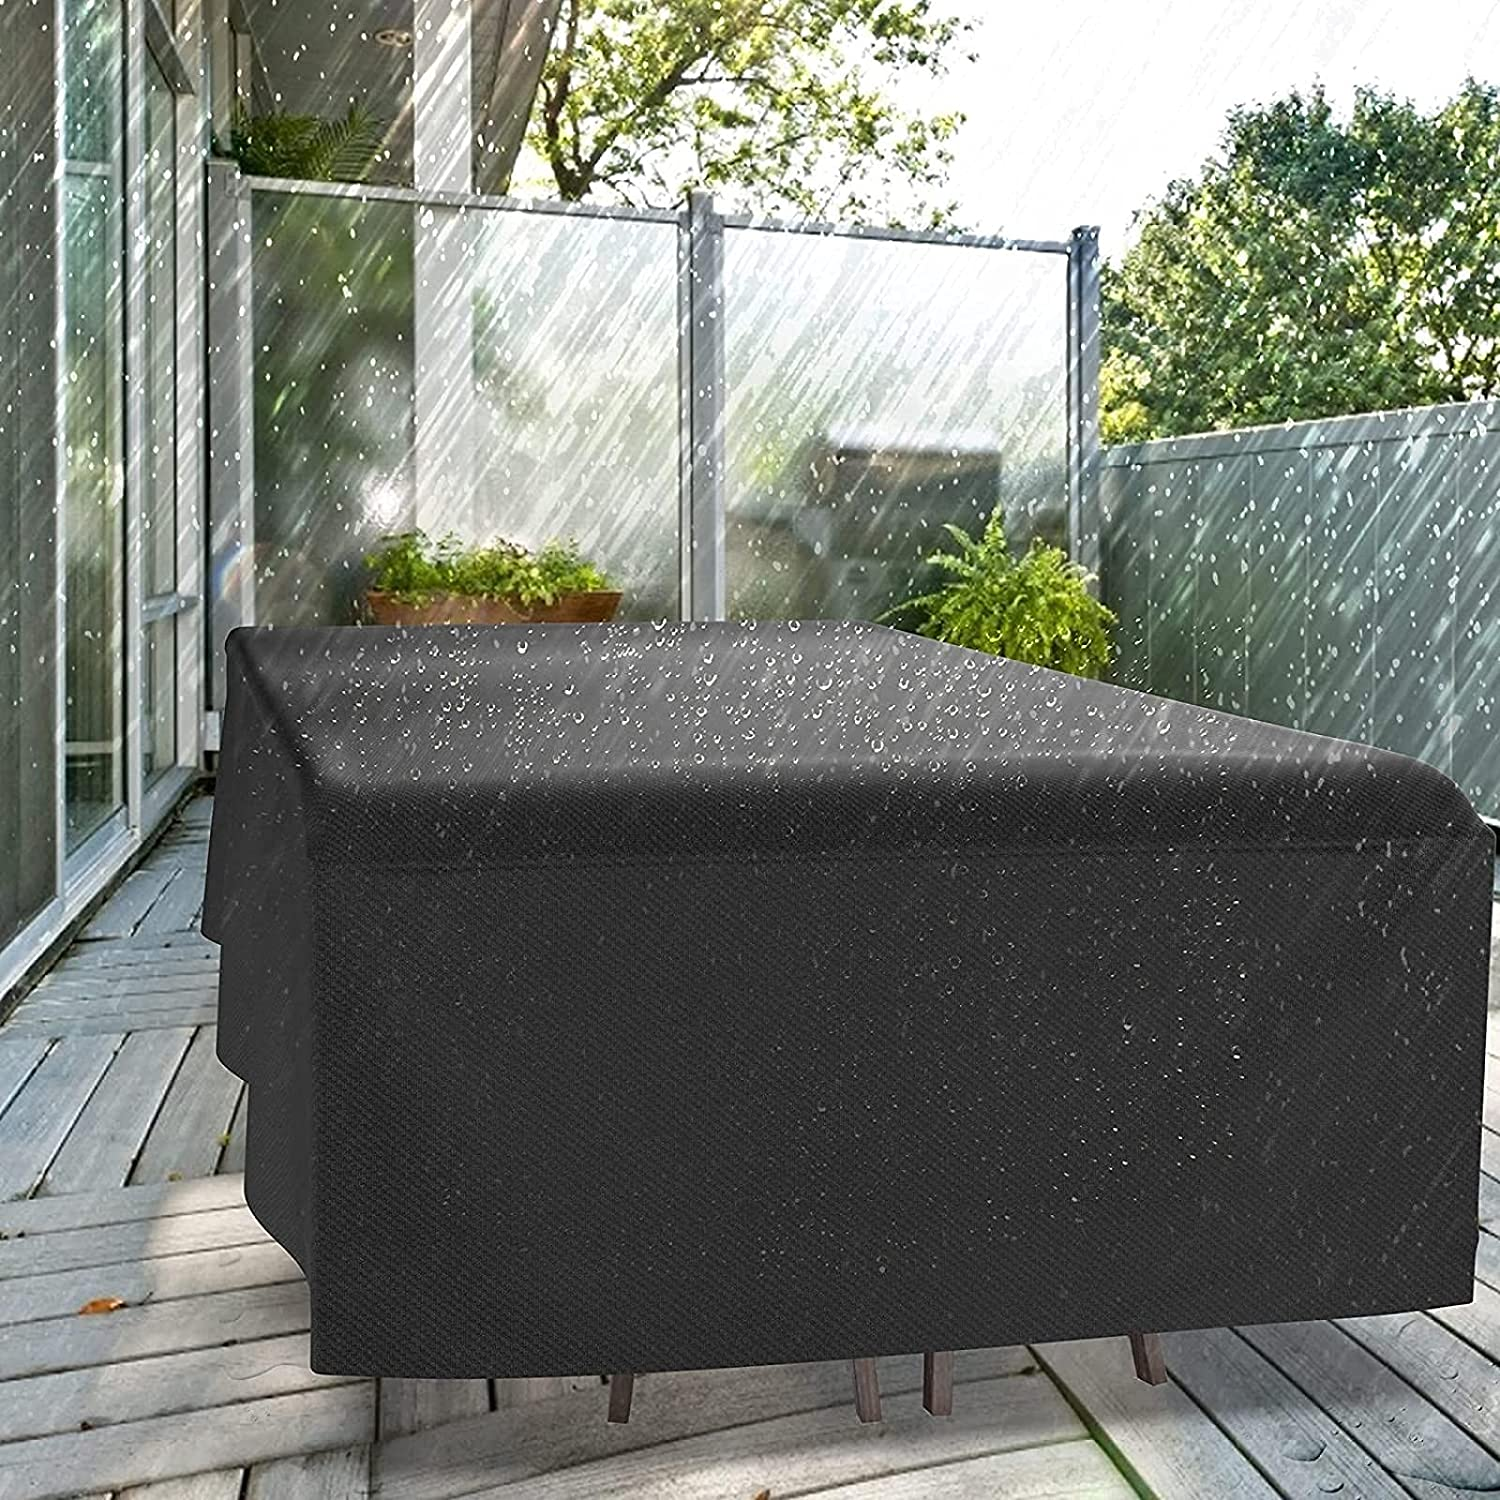 Garden Furniture Covers Outdoor Waterproof We OFFer at cheap Ranking TOP12 prices 420D